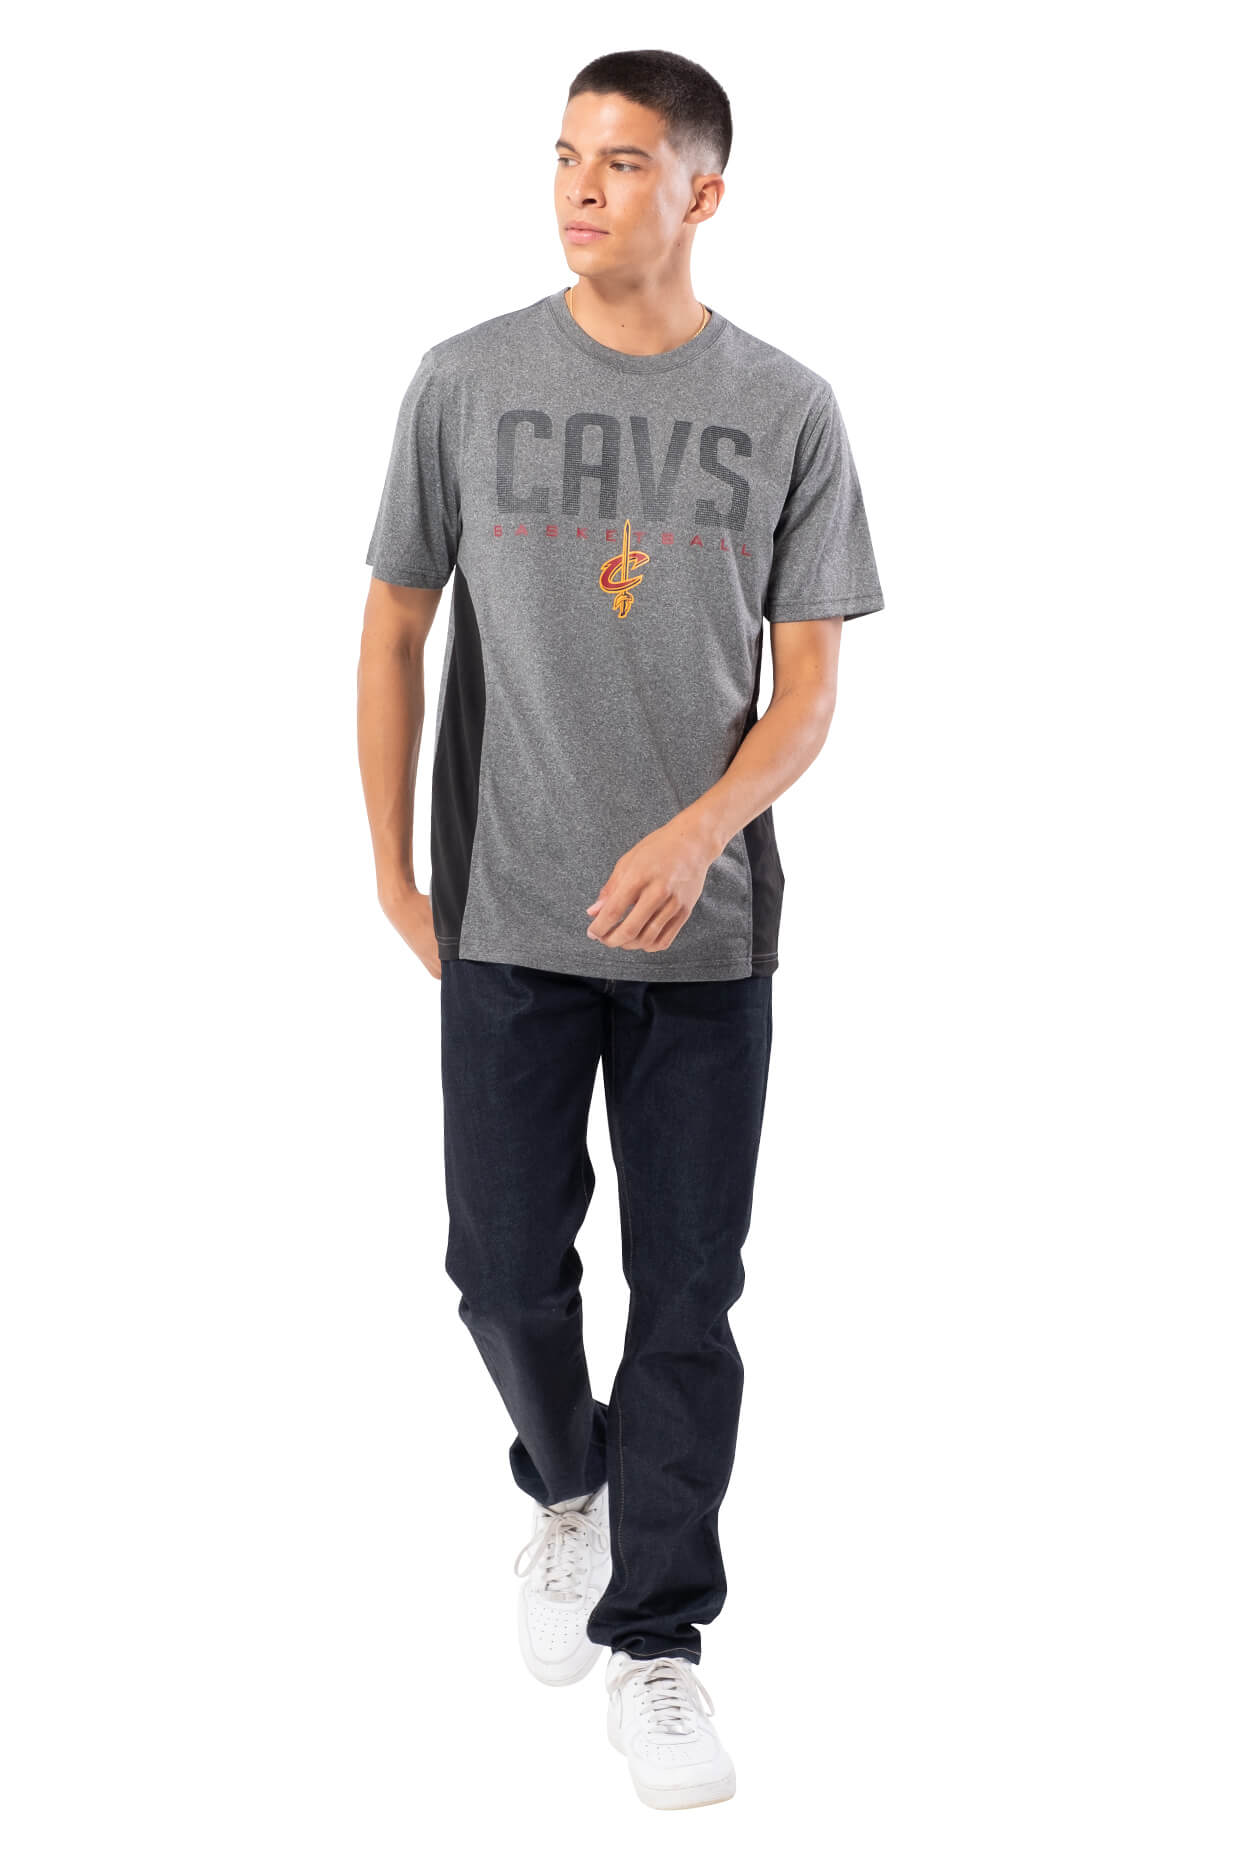 NBA Cleveland Cavaliers Men's Short Sleeve Tee|Cleveland Cavaliers